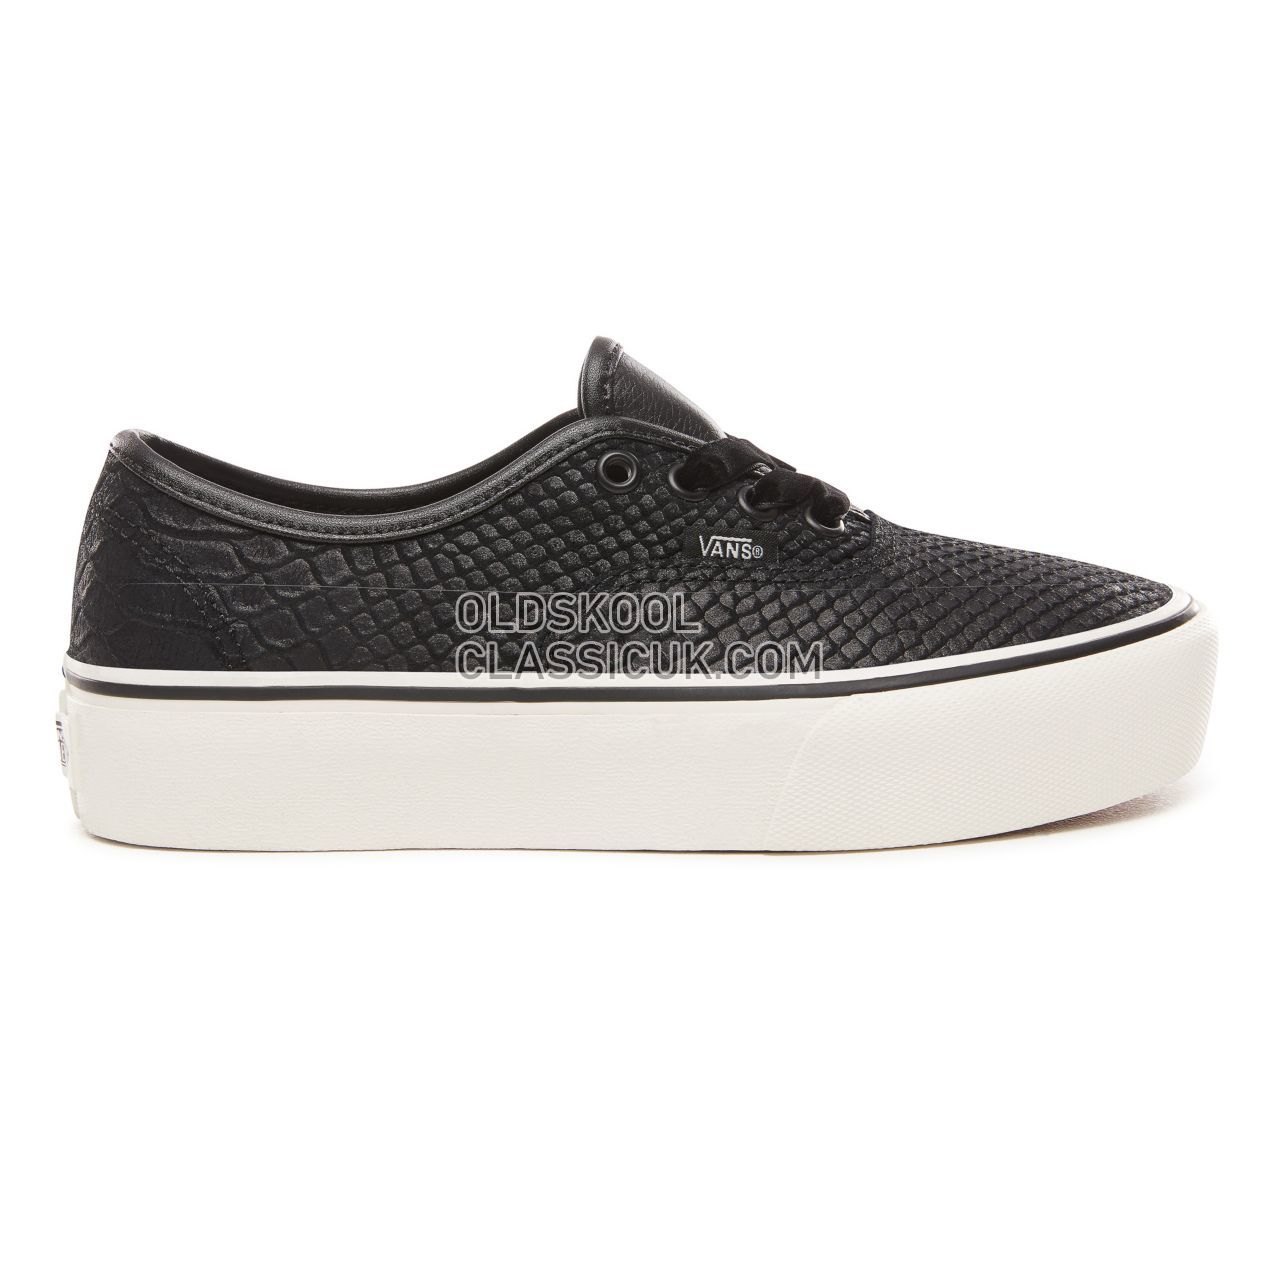 ef31bab44f Vans Leather Authentic Platform 2.0 Sneakers Womens (Leather) Snake Black  VN0A3AV8UQF Shoes ...